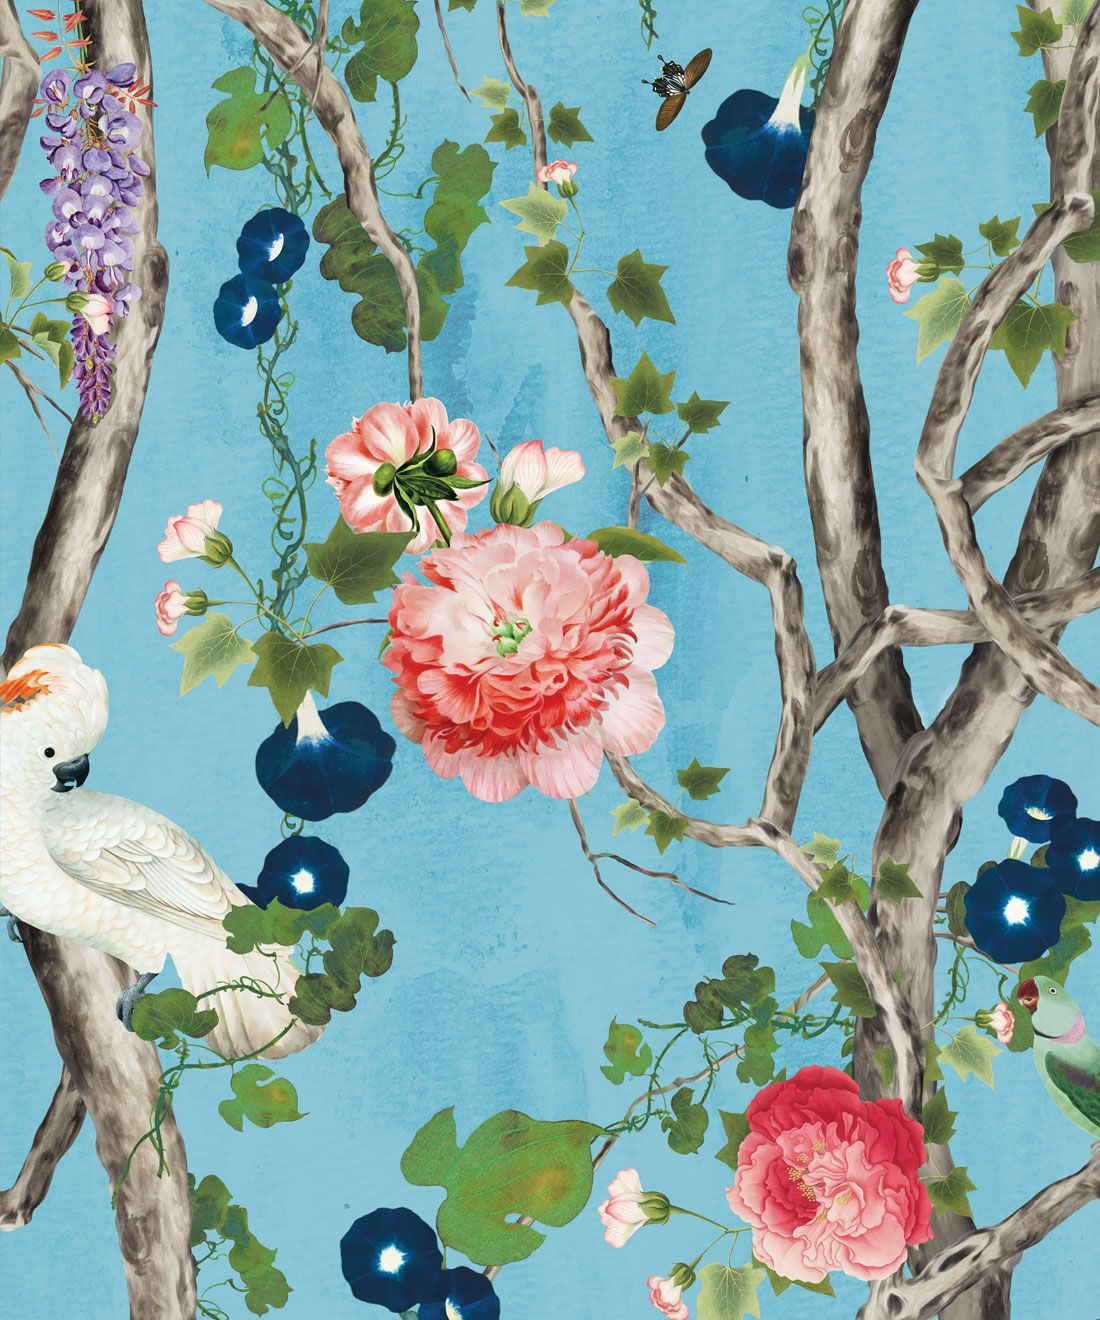 Empress Wallpaper • Romantic Wallpaper • Floral Wallpaper • Chinoiserie Wallpaper • Sky Blue colour wallpaper swatch